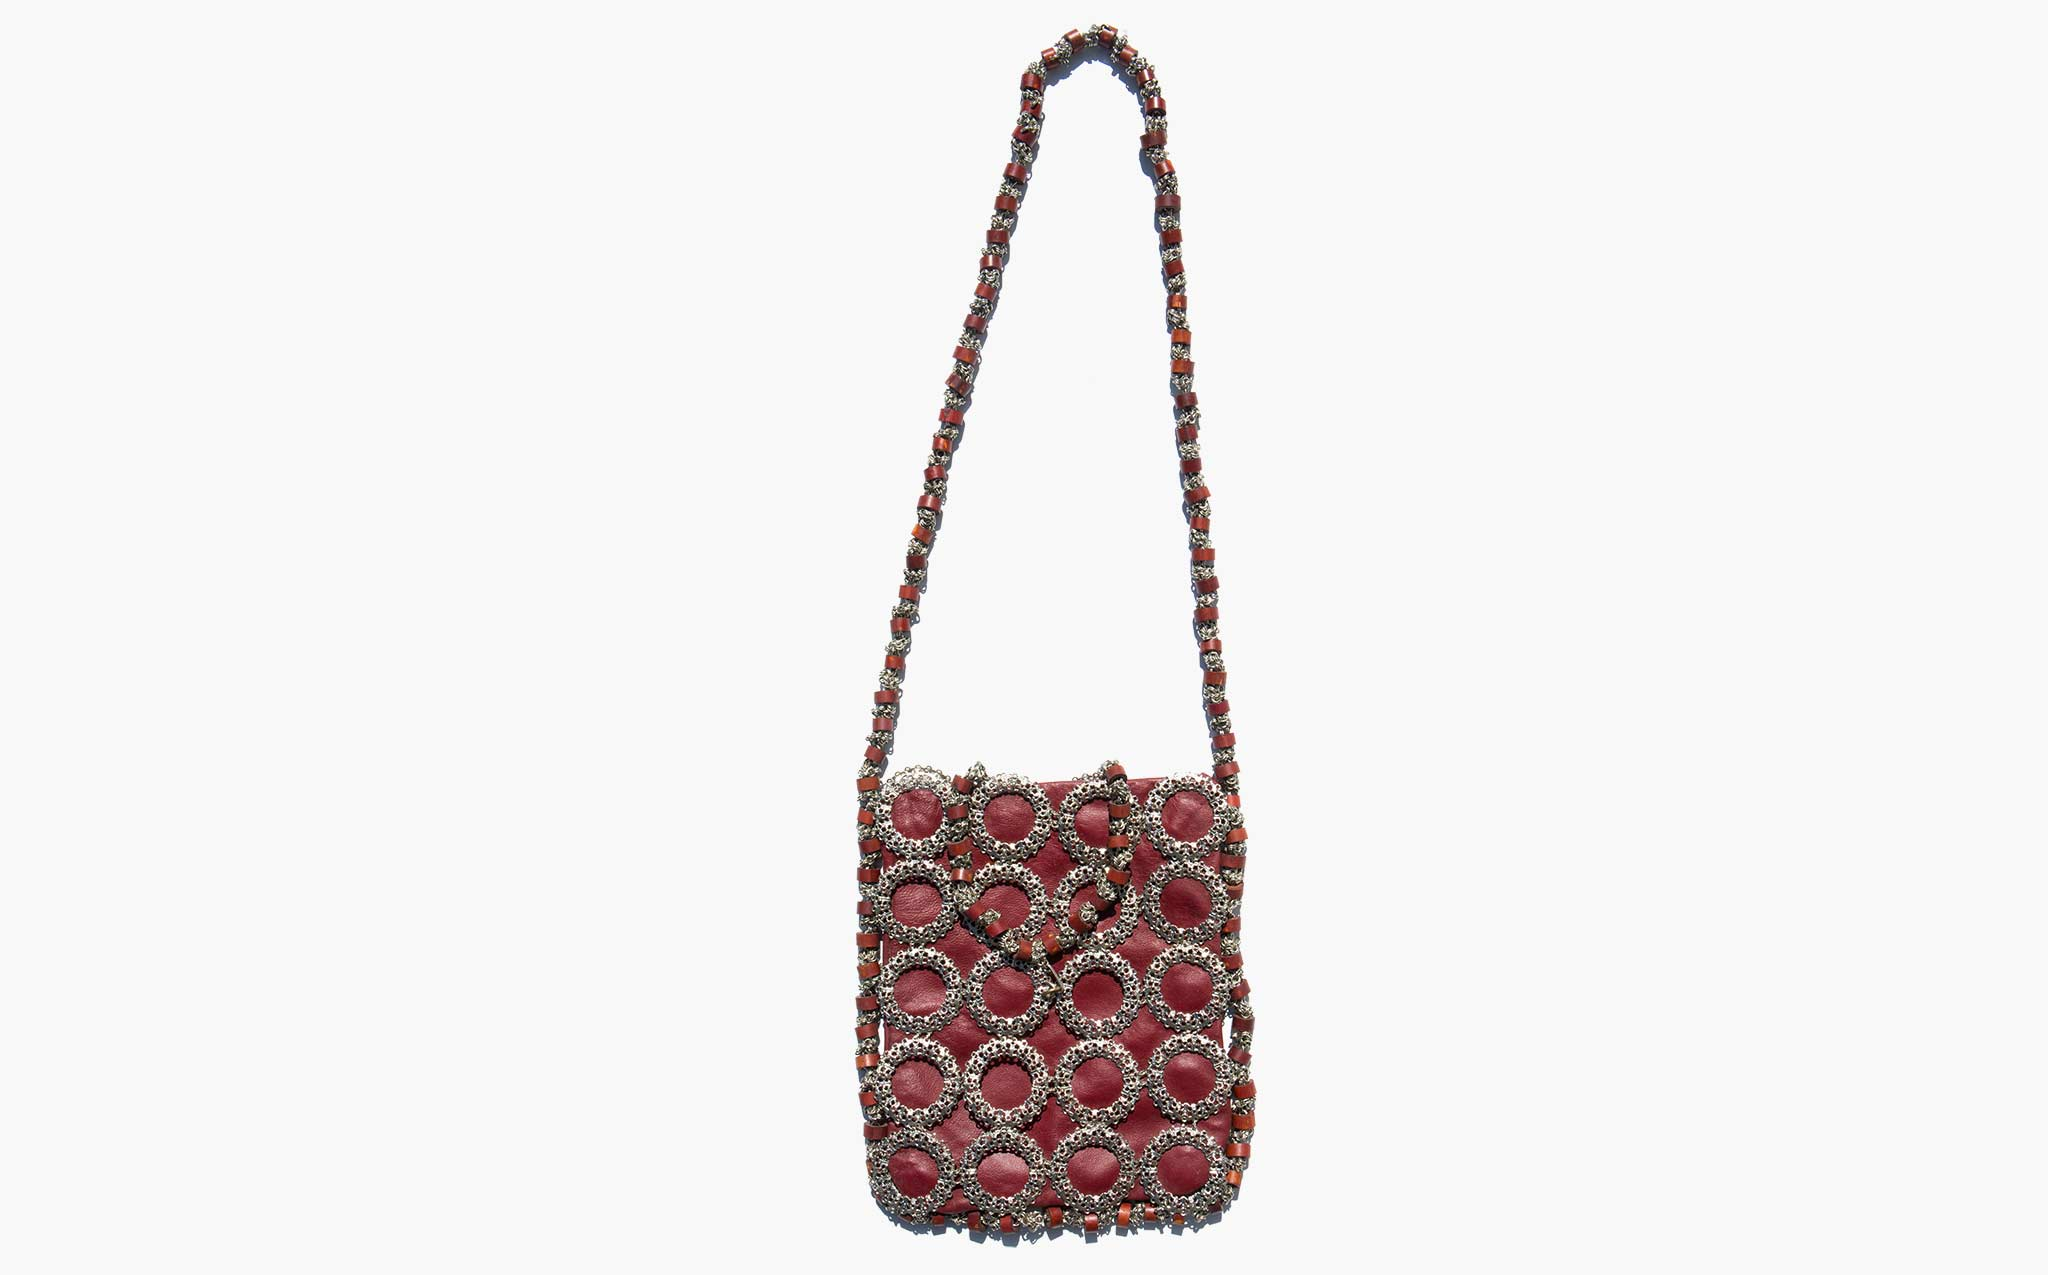 The Romy Tote